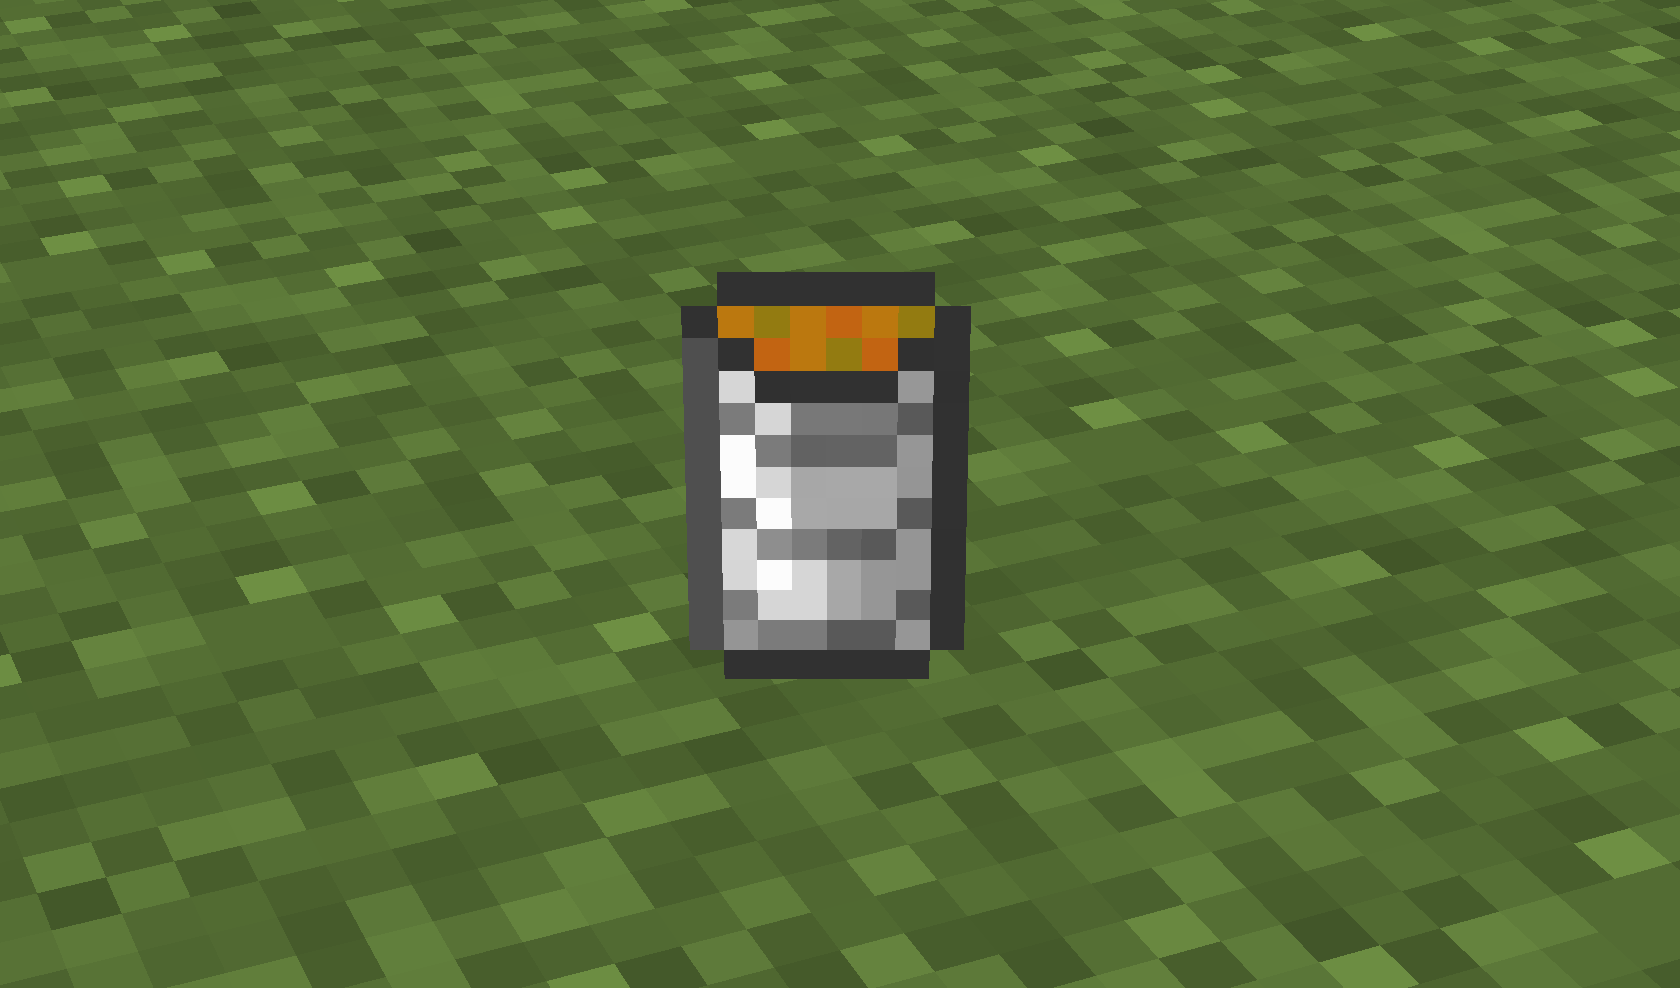 filled tin can technic pack wiki fandom powered by wikia rh technicpack wikia com Minecraft Weapons Mod Minecraft Girlfriend Mod